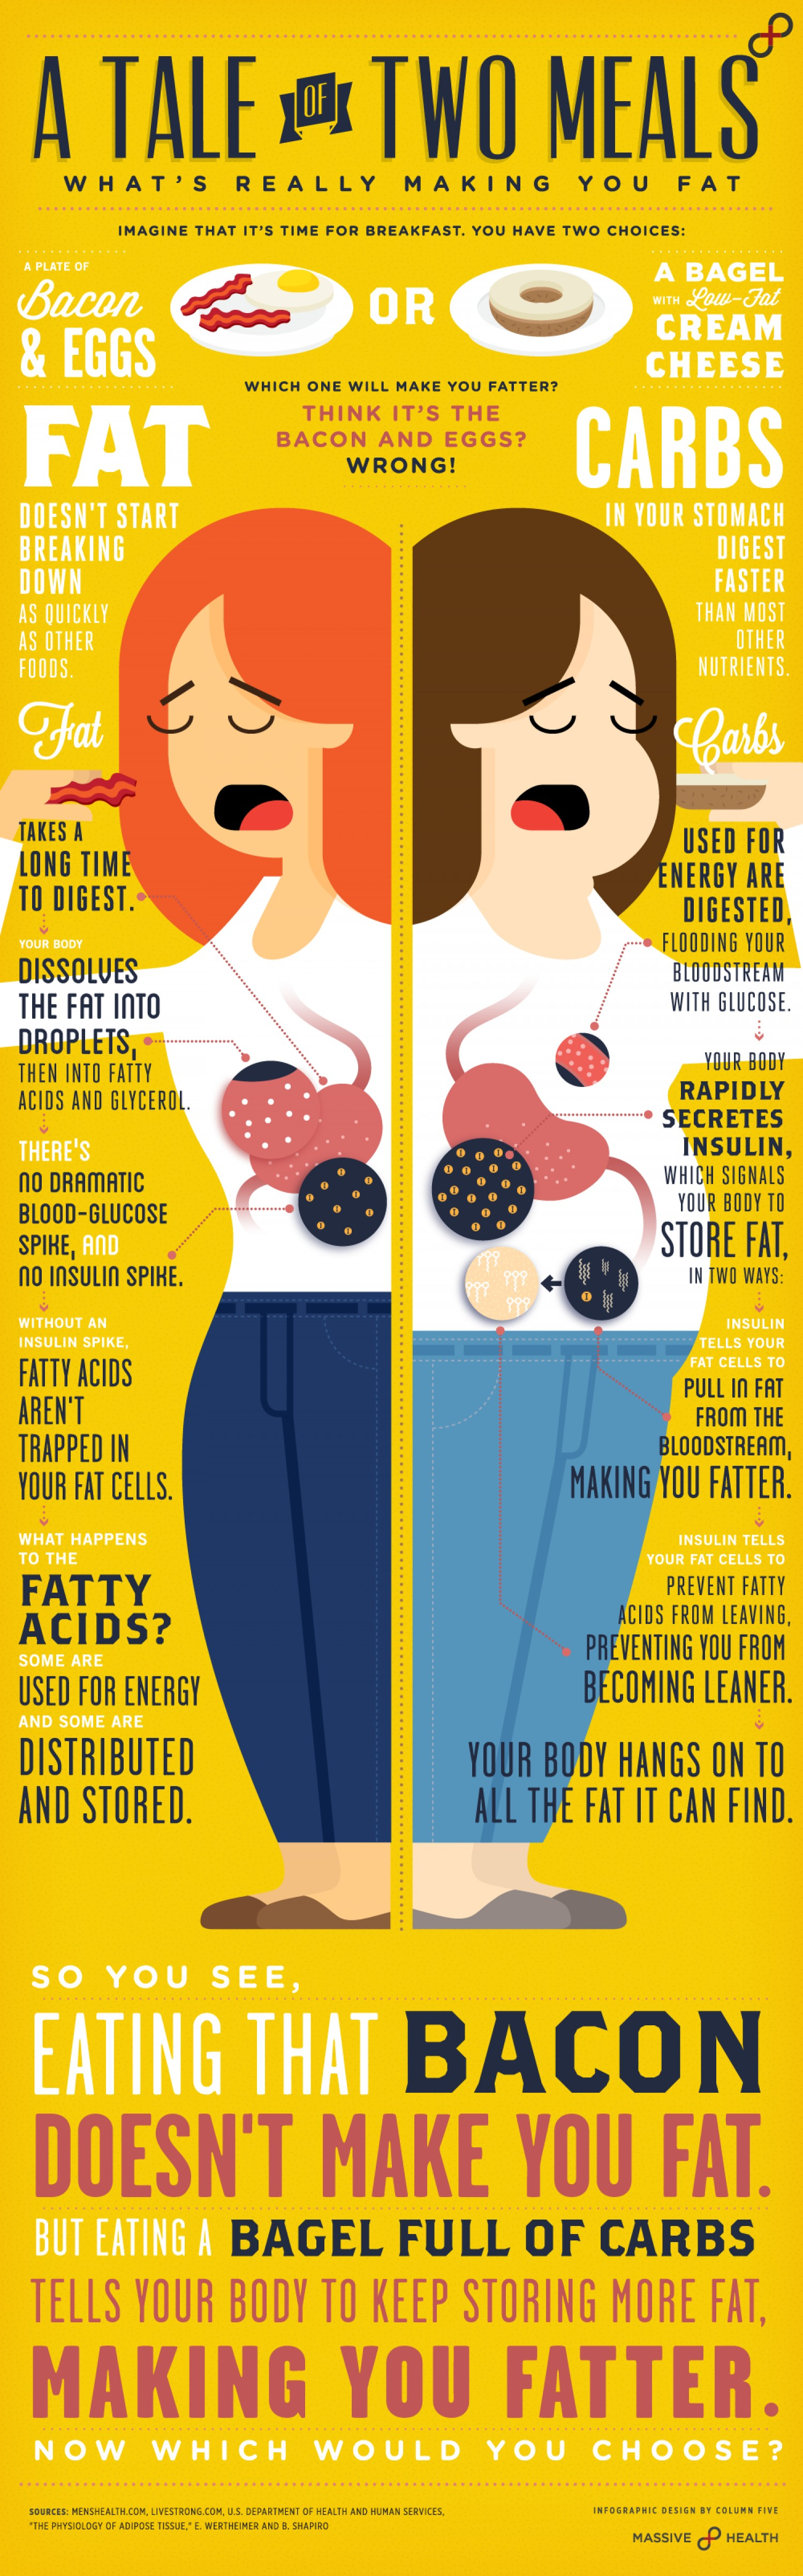 A Tale of Two Meals: What's Really Making Your Fat?